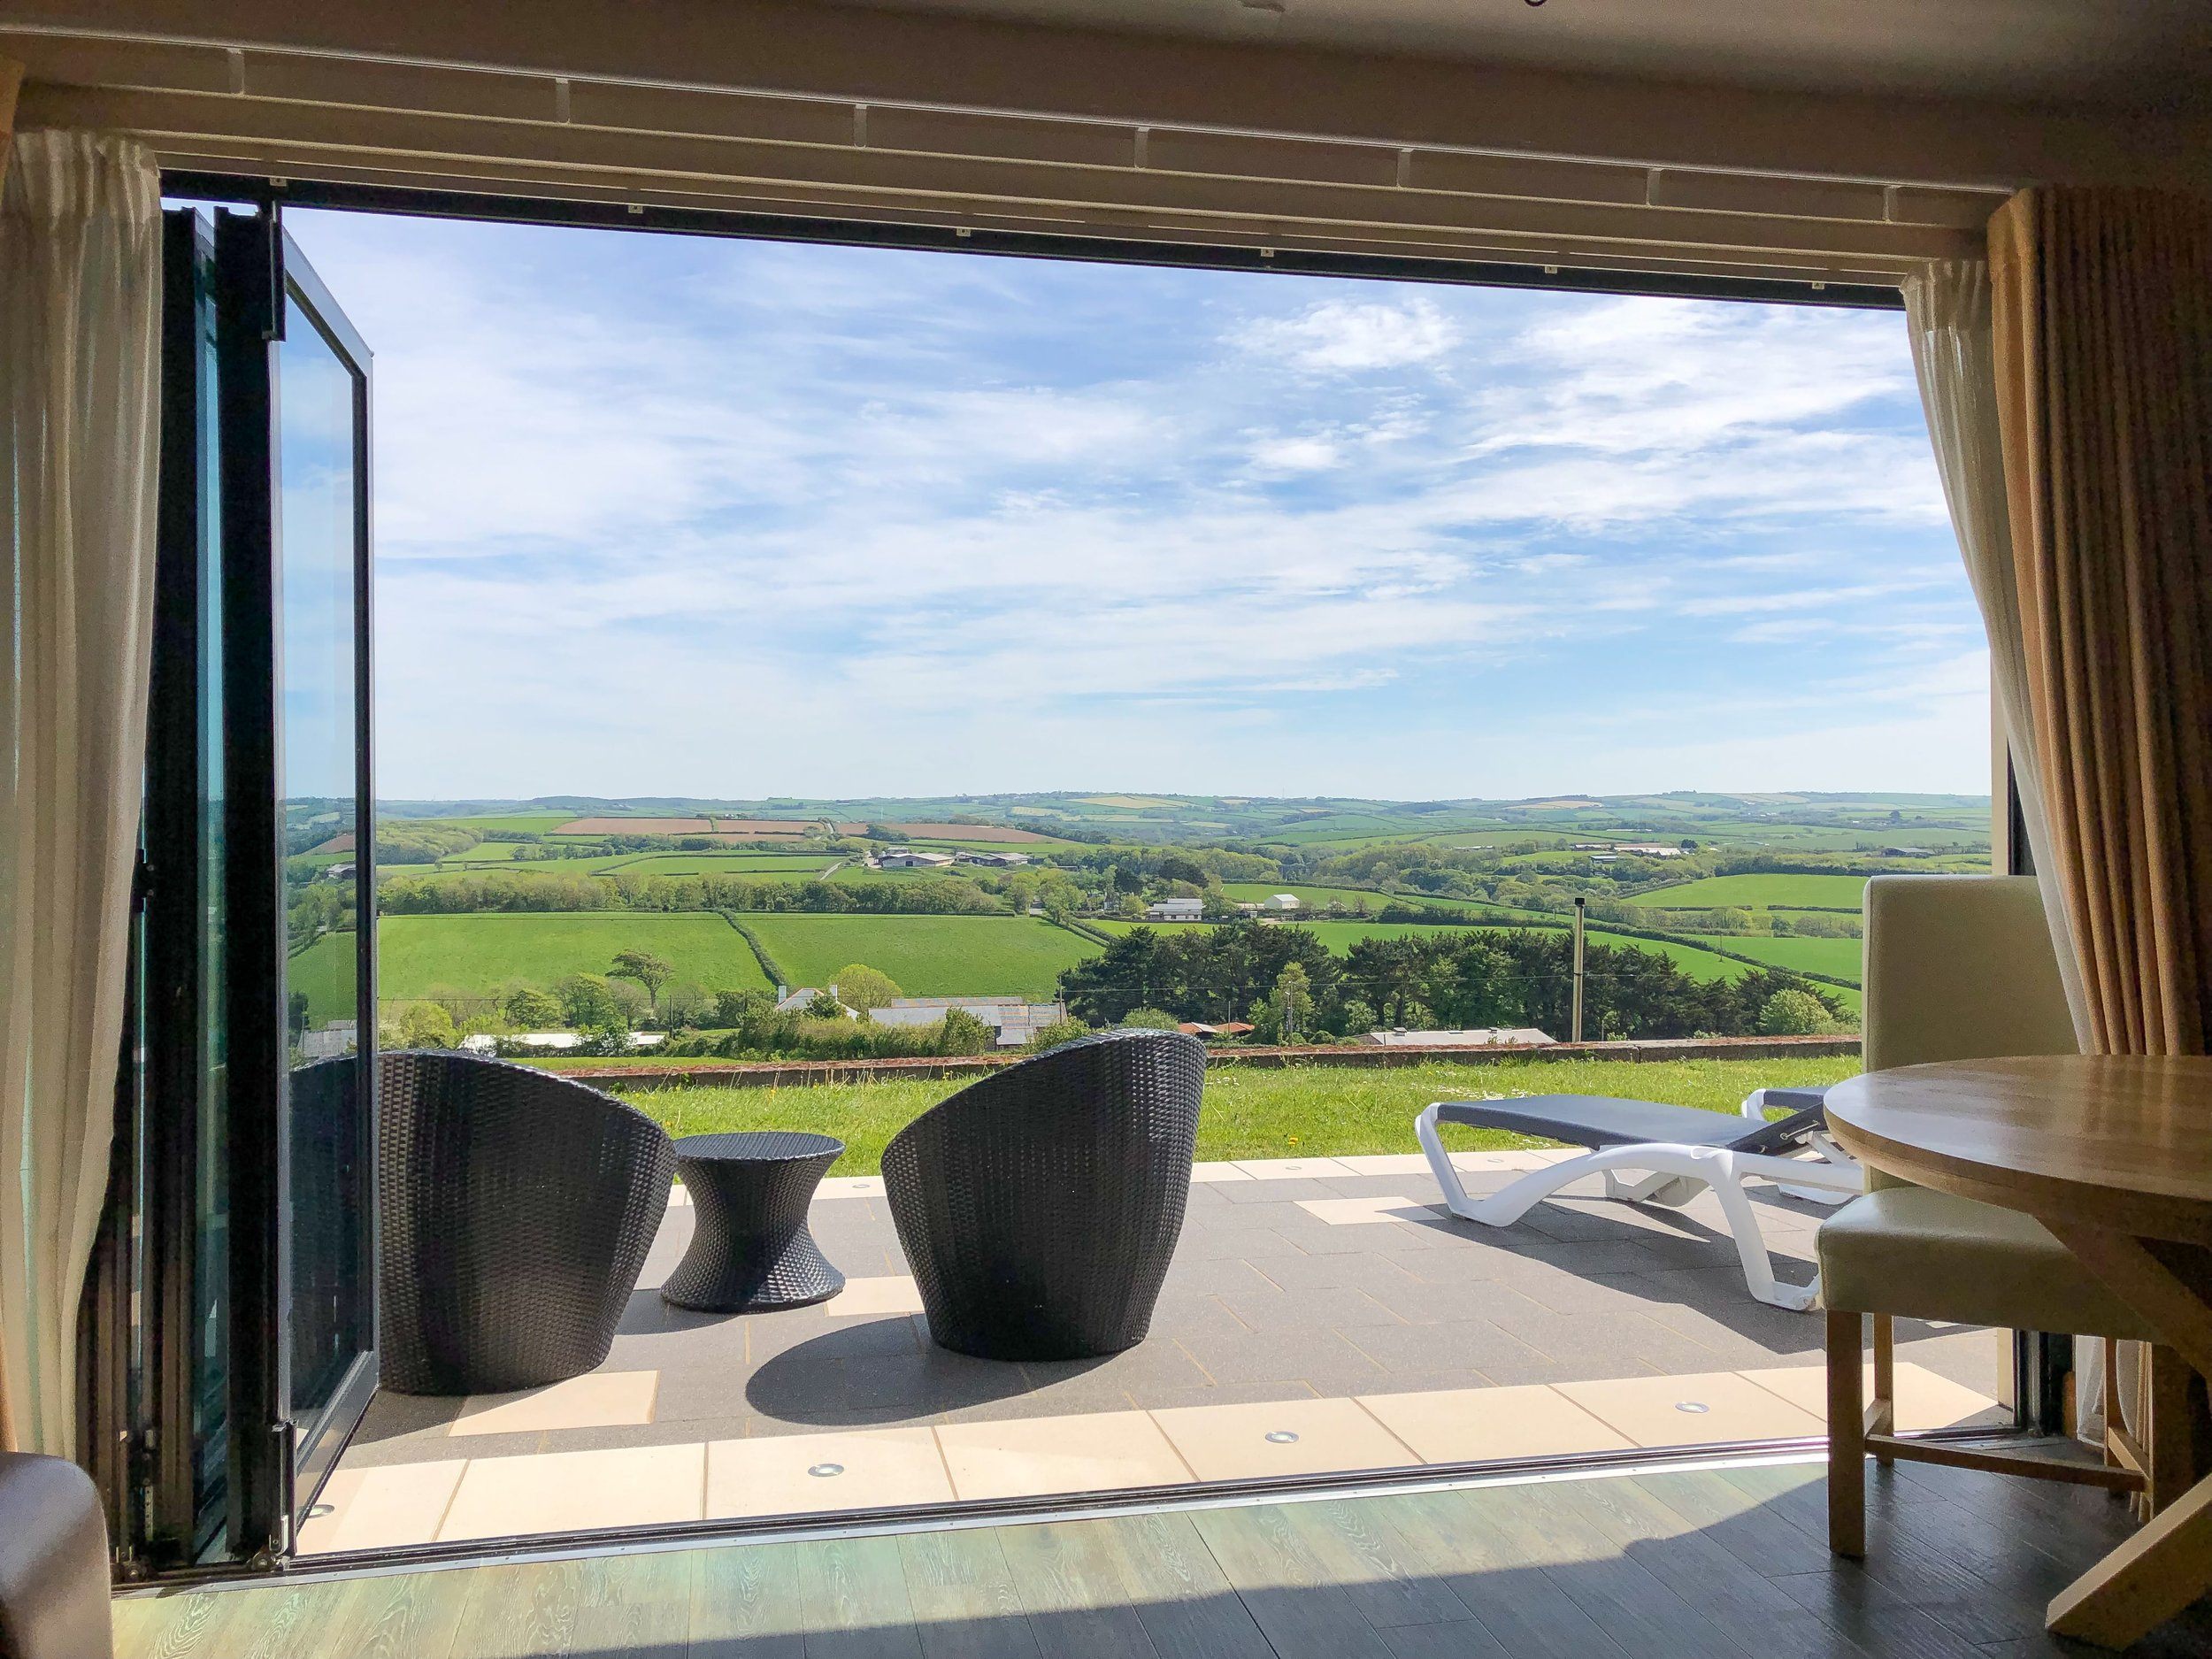 Bi-folding doors opening to the patio area with outstanding Cornish countryside views